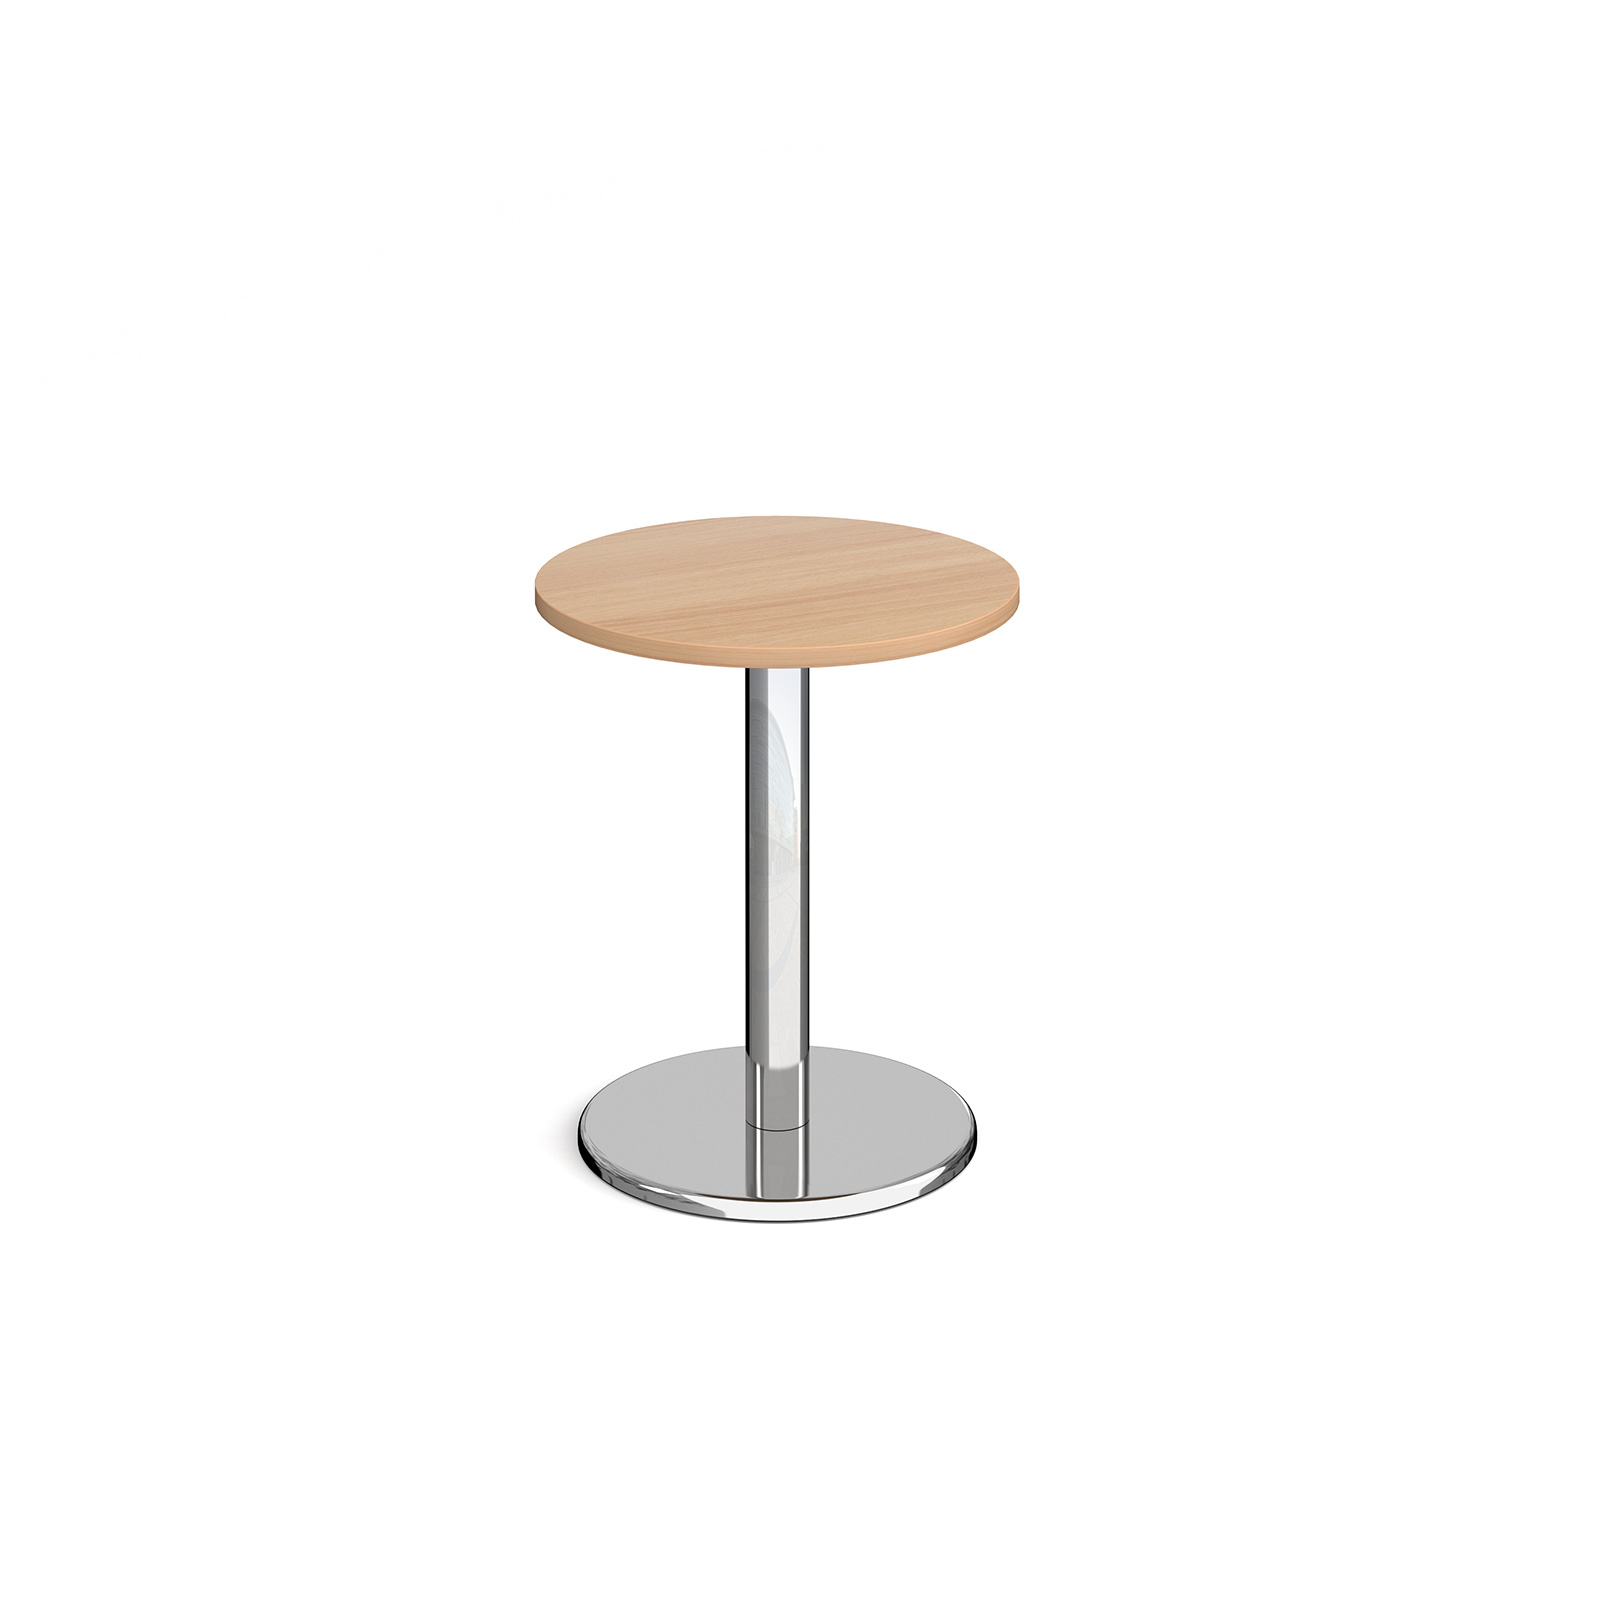 Canteen / Dining Pisa circular dining table with round base